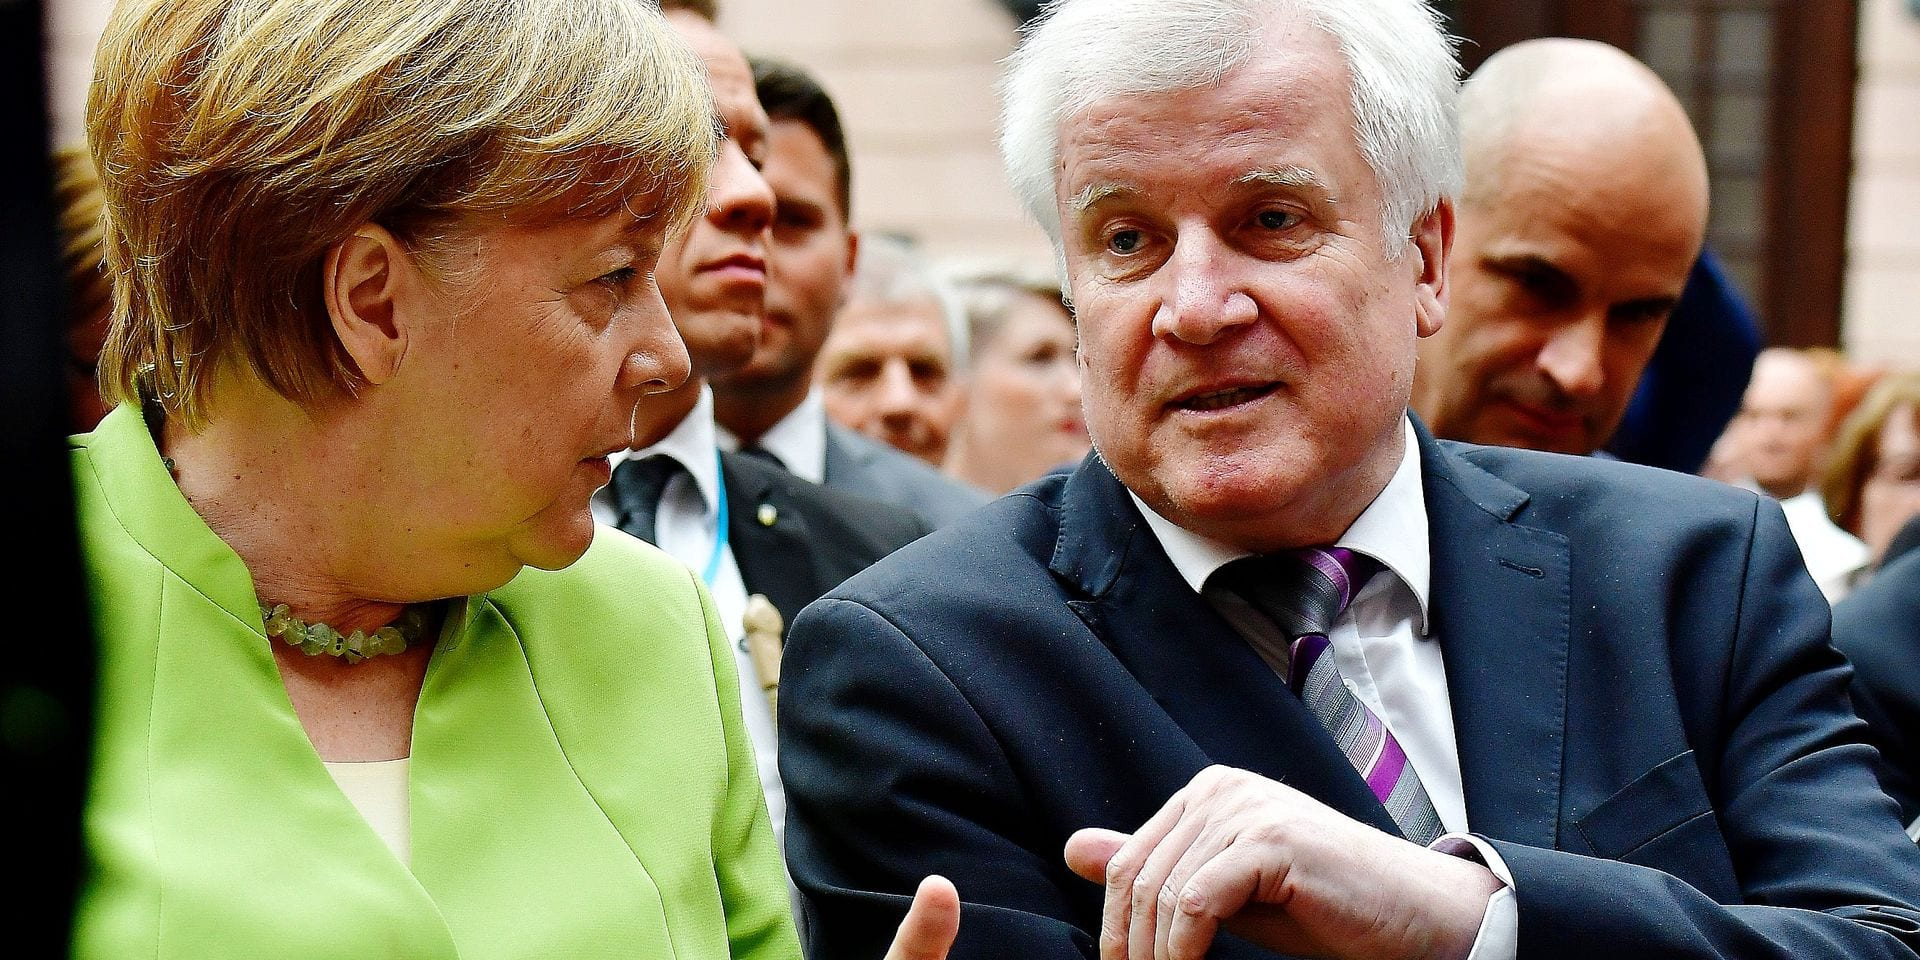 Chancellor Angela Merkel sits next to German Interior Minister Horst Seehofer as they attend a ceremony commemorating the victims of displacement on Germany's refugee day, at the German Histic Museum (DHM) in Berlin on June 20, 2018. / AFP PHOTO / Tobias SCHWARZ